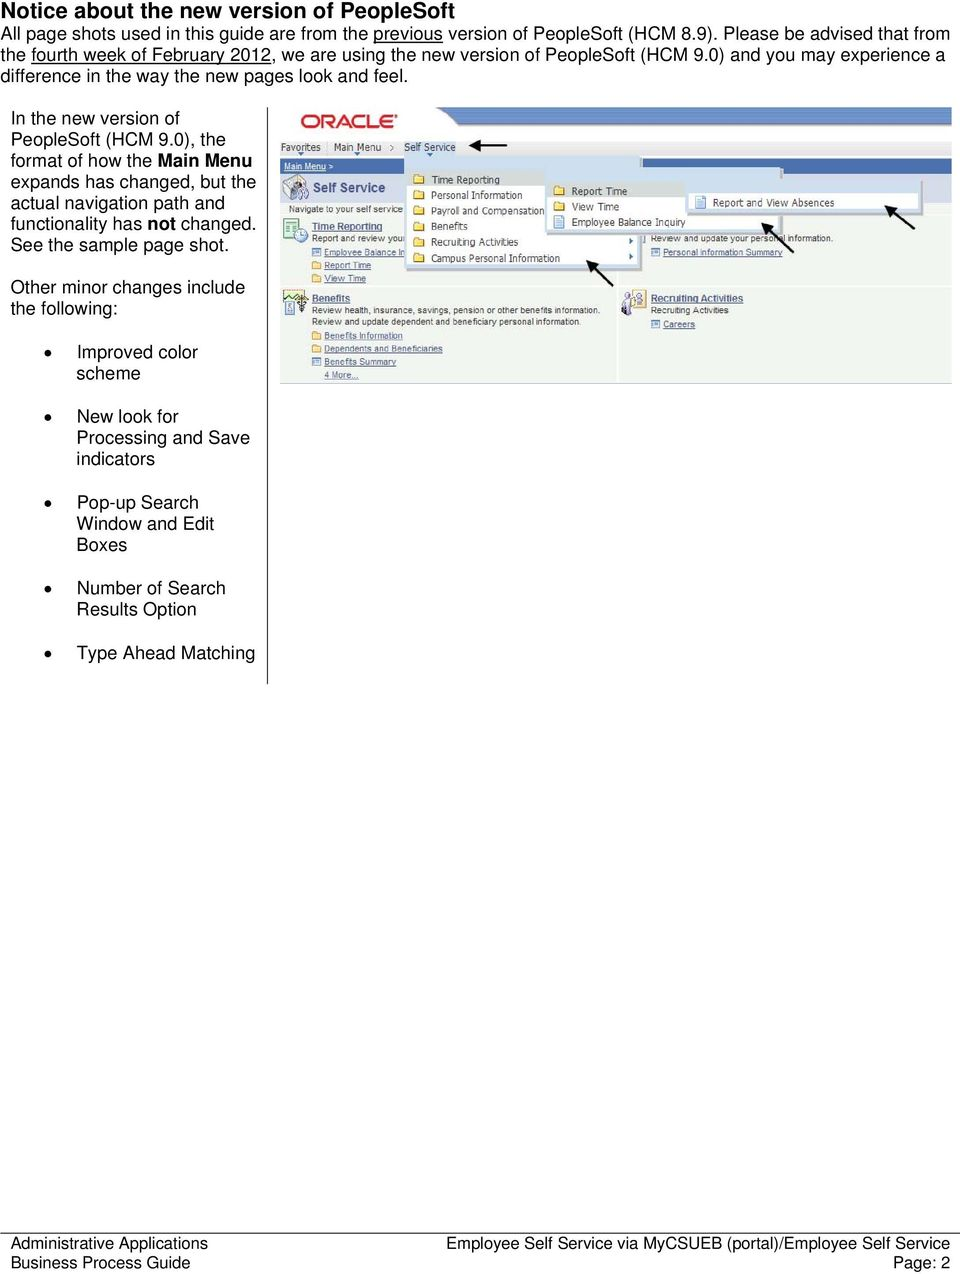 0) and you may experience a difference in the way the new pages look and feel. In the new version of PeopleSoft (HCM 9.